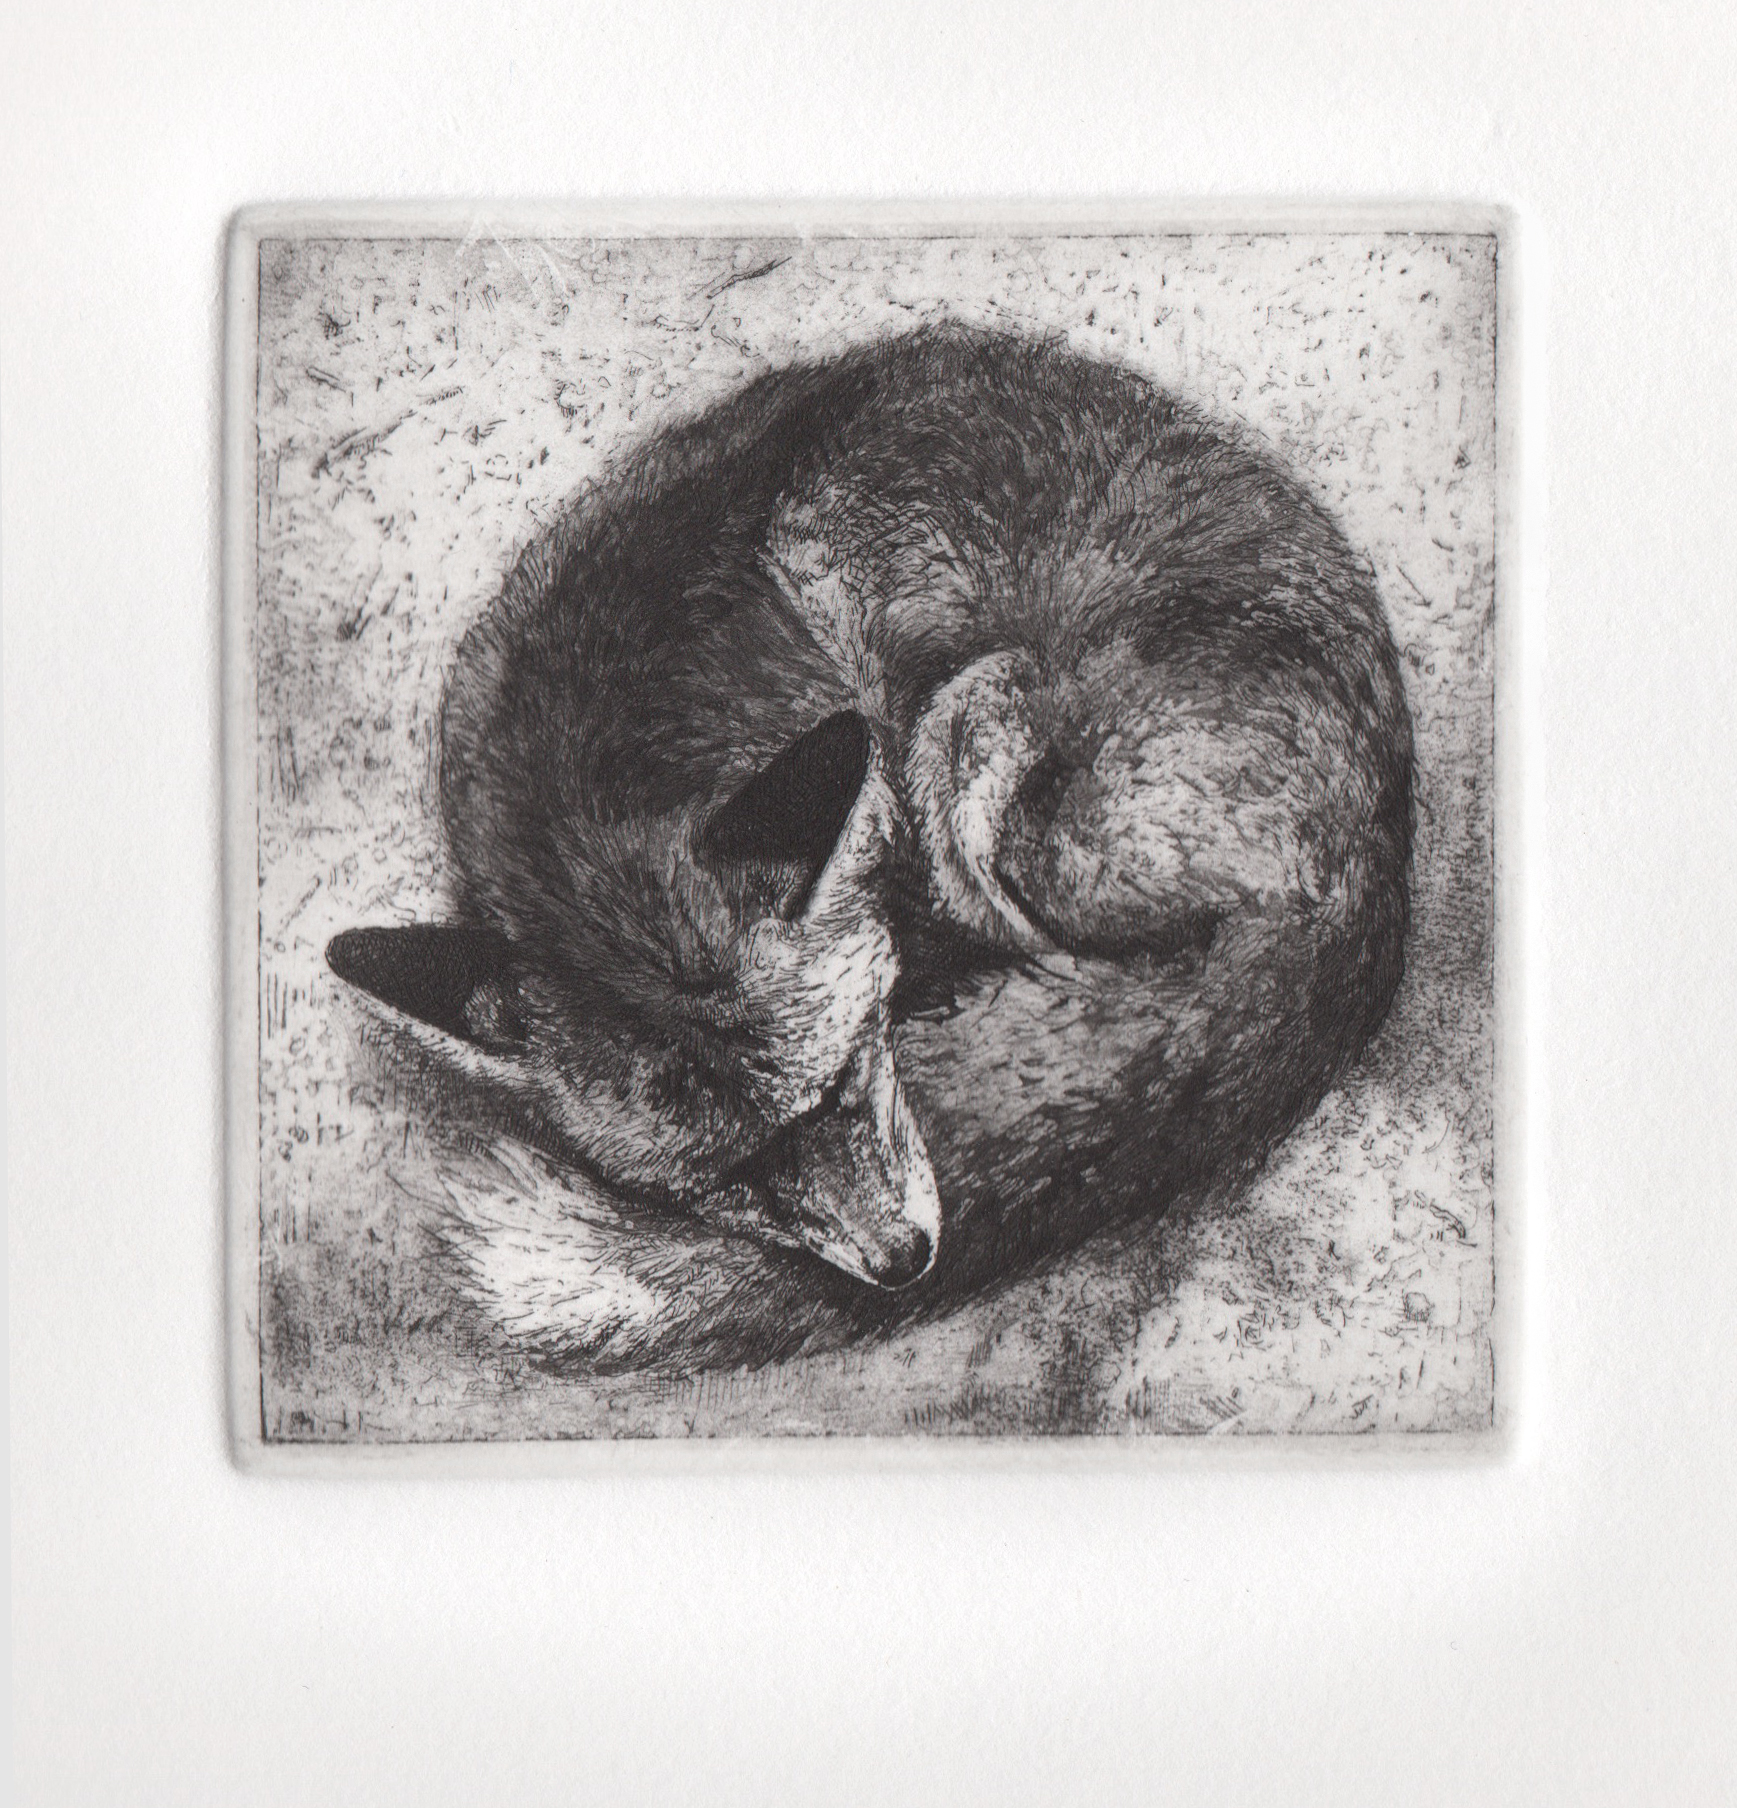 Red Fox , 2014. Etching, aquatint, and drypoint on copper.4 x 4 inches. Edition of 30.  Prints available